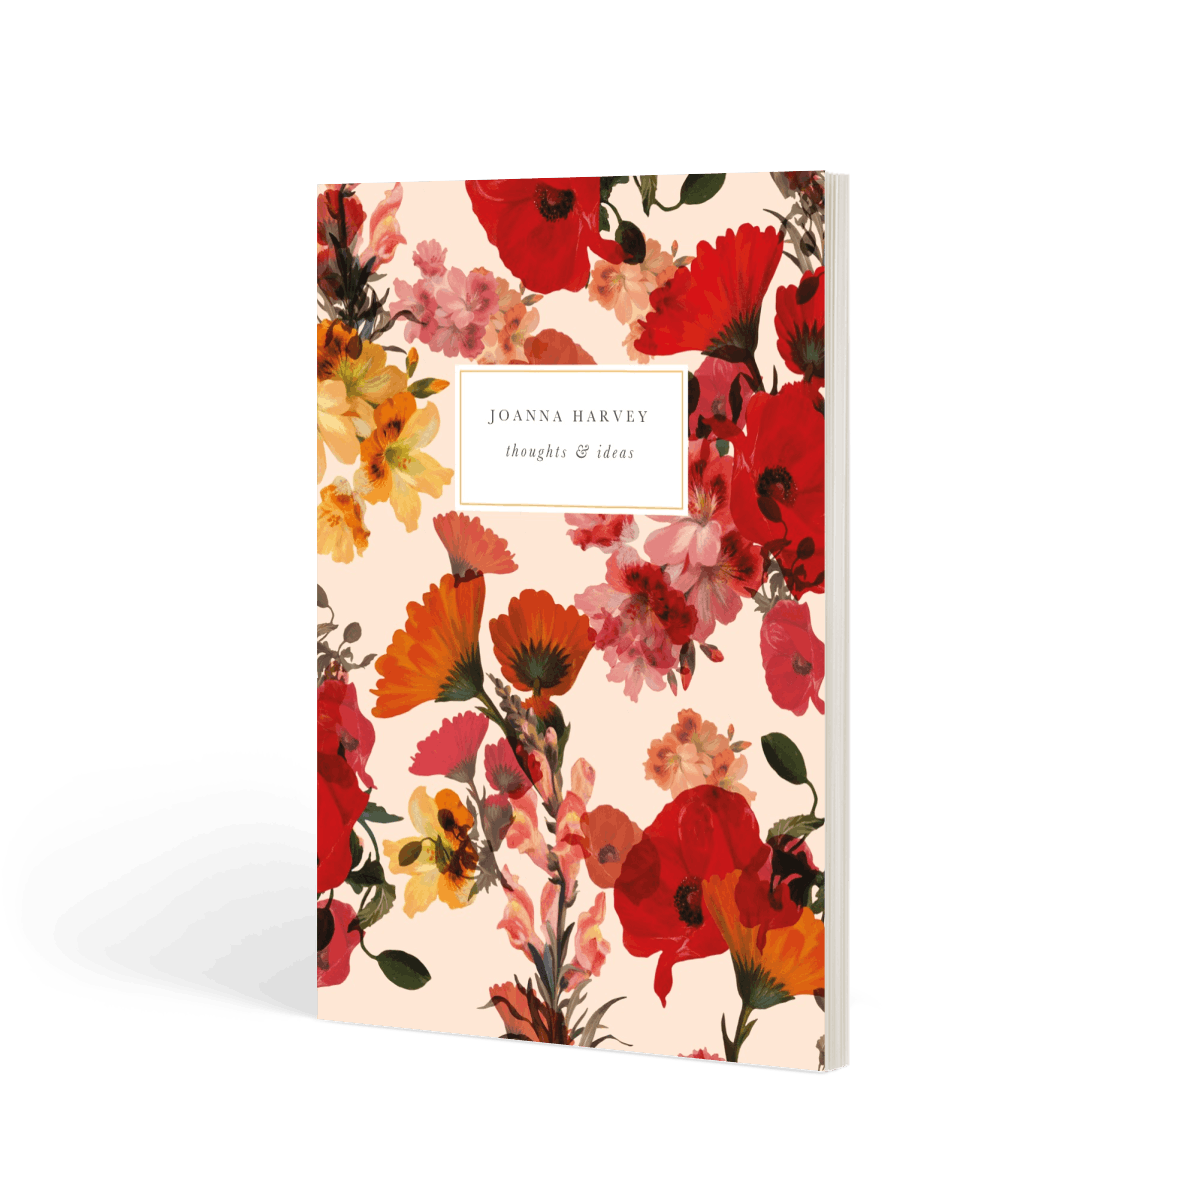 Https%3a%2f%2fwww.papier.com%2fproduct image%2f55506%2f6%2fcordelia floral 13333 front 1567424833.png?ixlib=rb 1.1